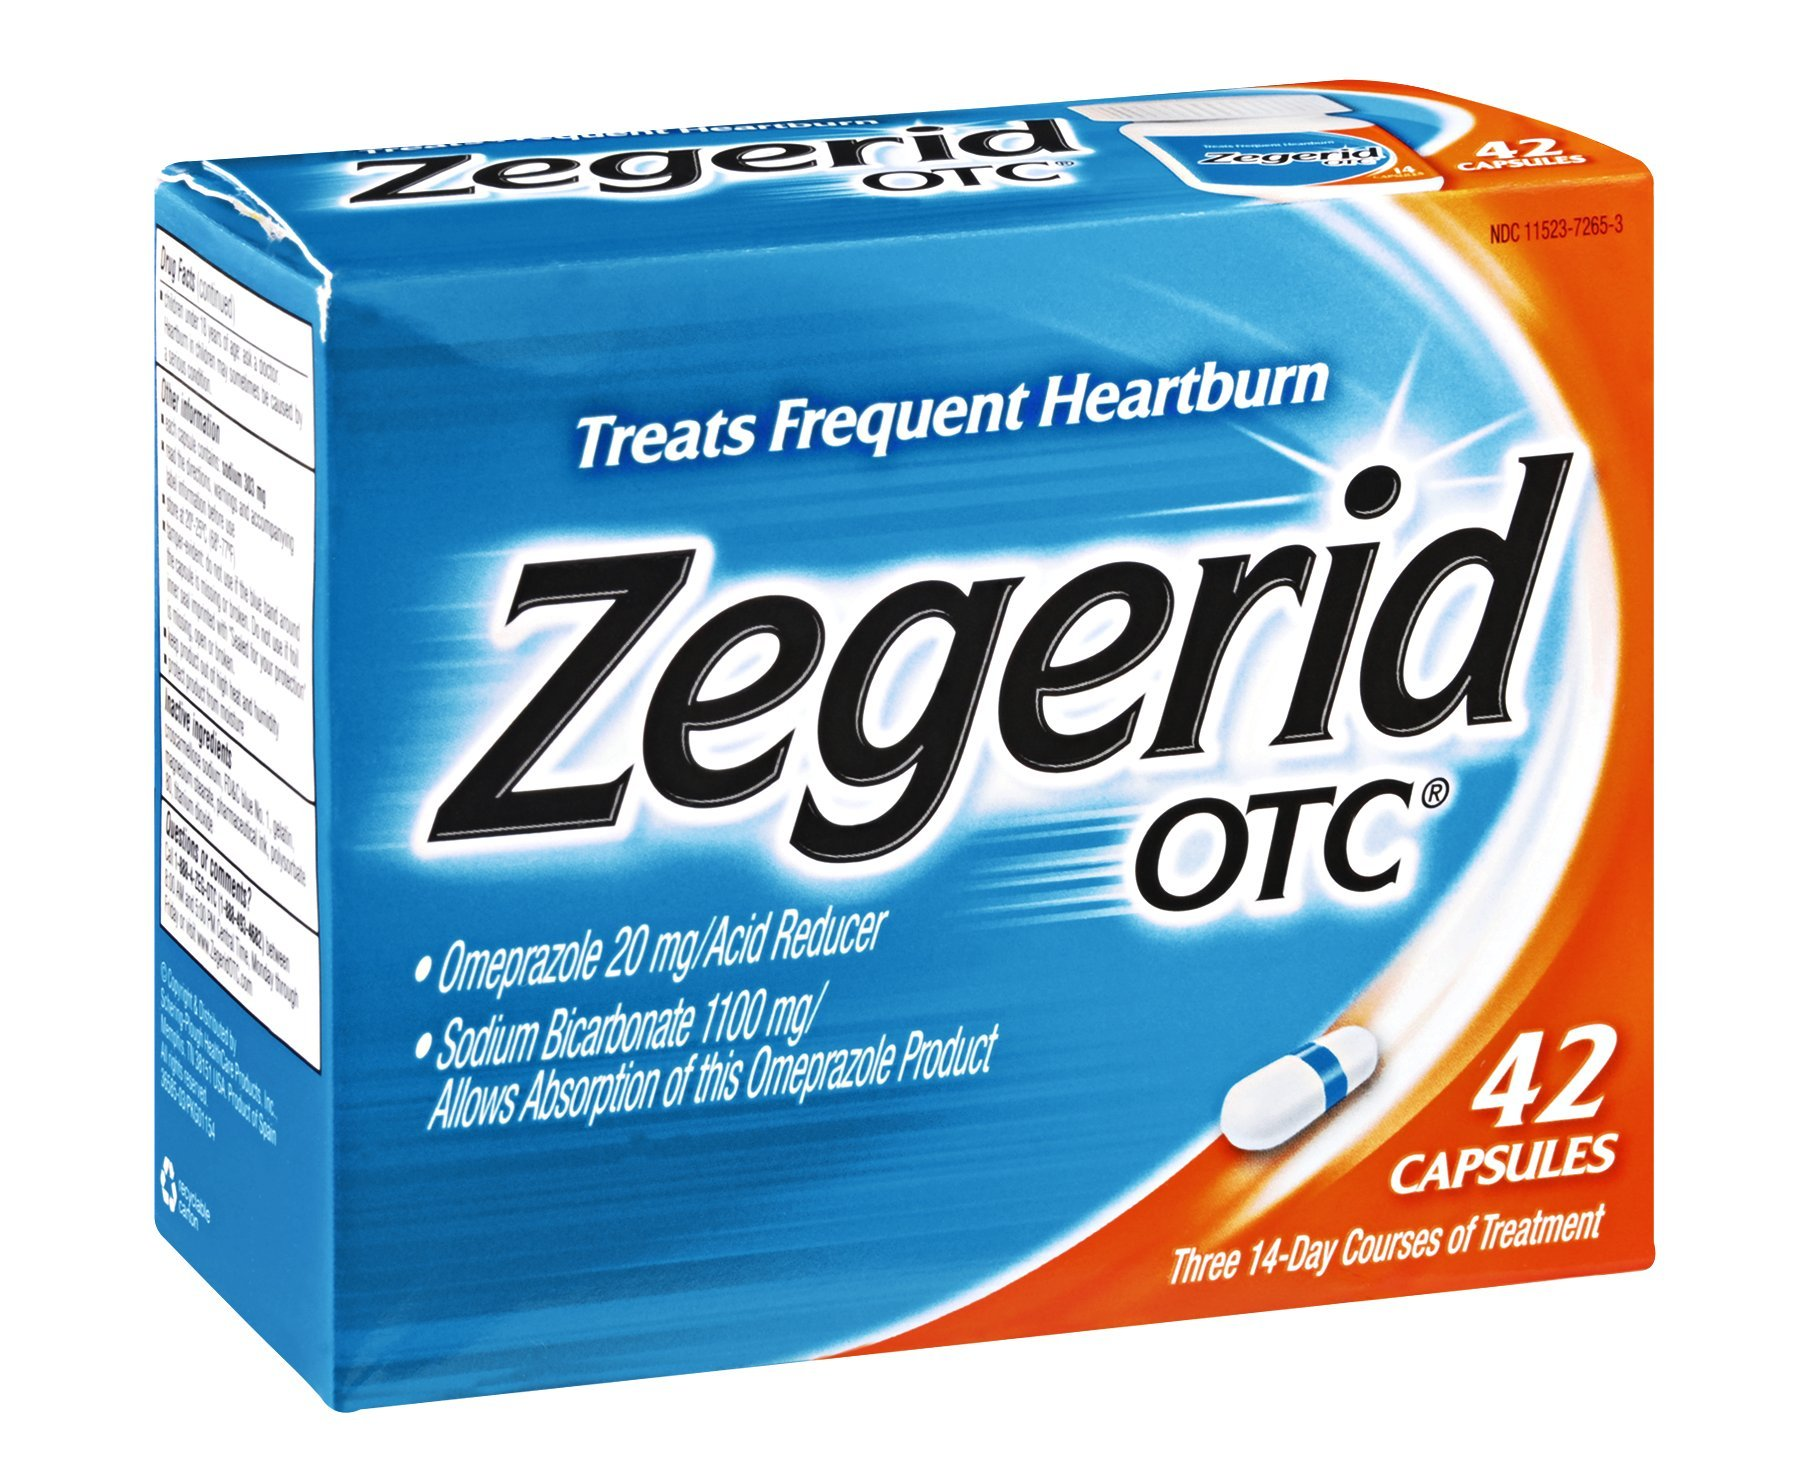 Zegerid OTC Heartburn Relief Capsules , 42 CT (Pack of 4) by zegerid pack of 4